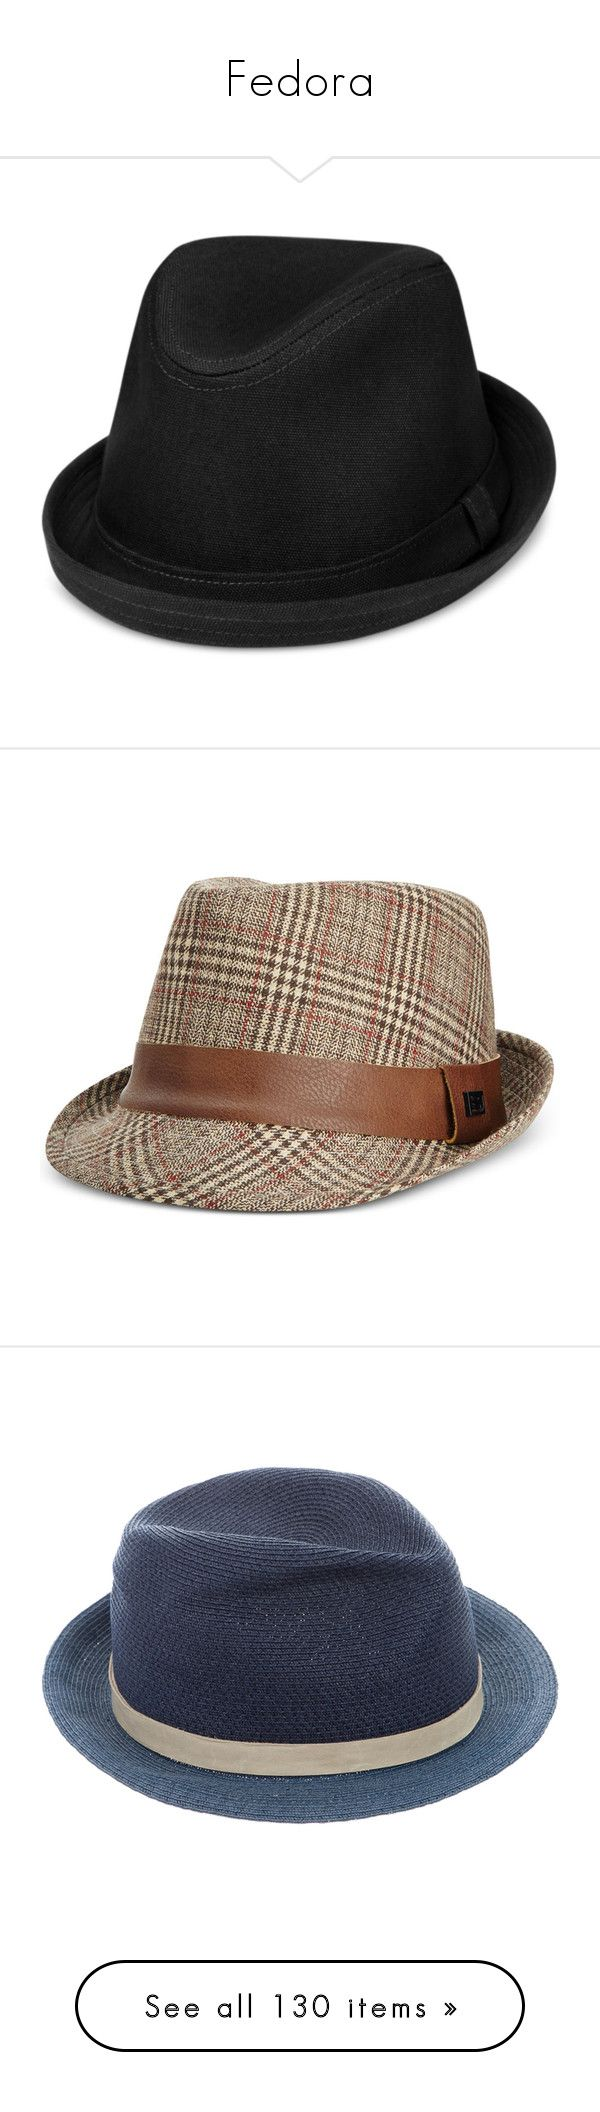 """""""Fedora"""" by aarabbit44 on Polyvore featuring men's fashion, men's accessories, men's hats, black, mens fedora hats, brown, mens fedora, mens hats, mens hats fedora and blue"""